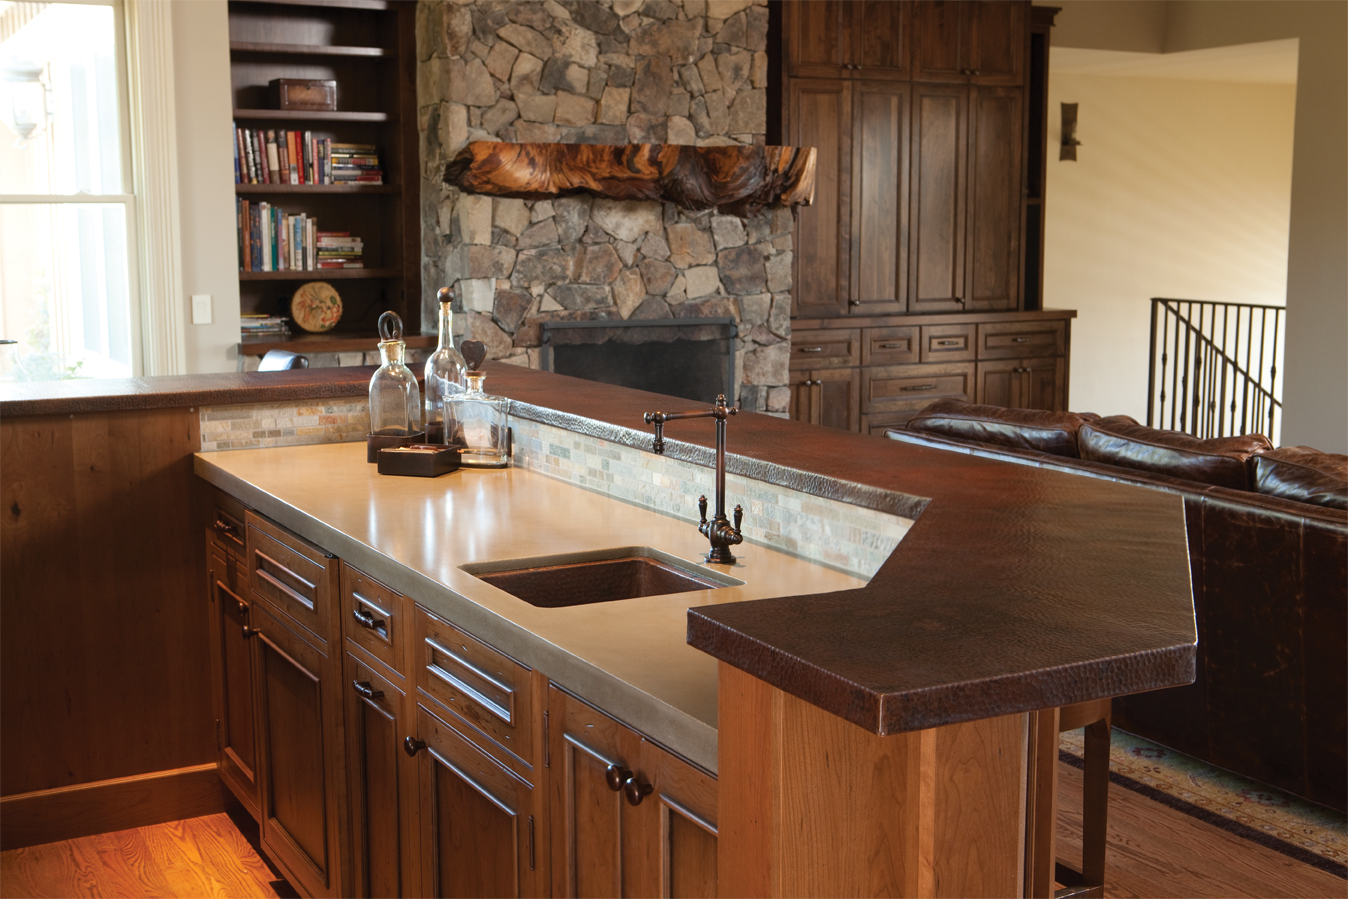 Wet Bar With Native Trails Sinks